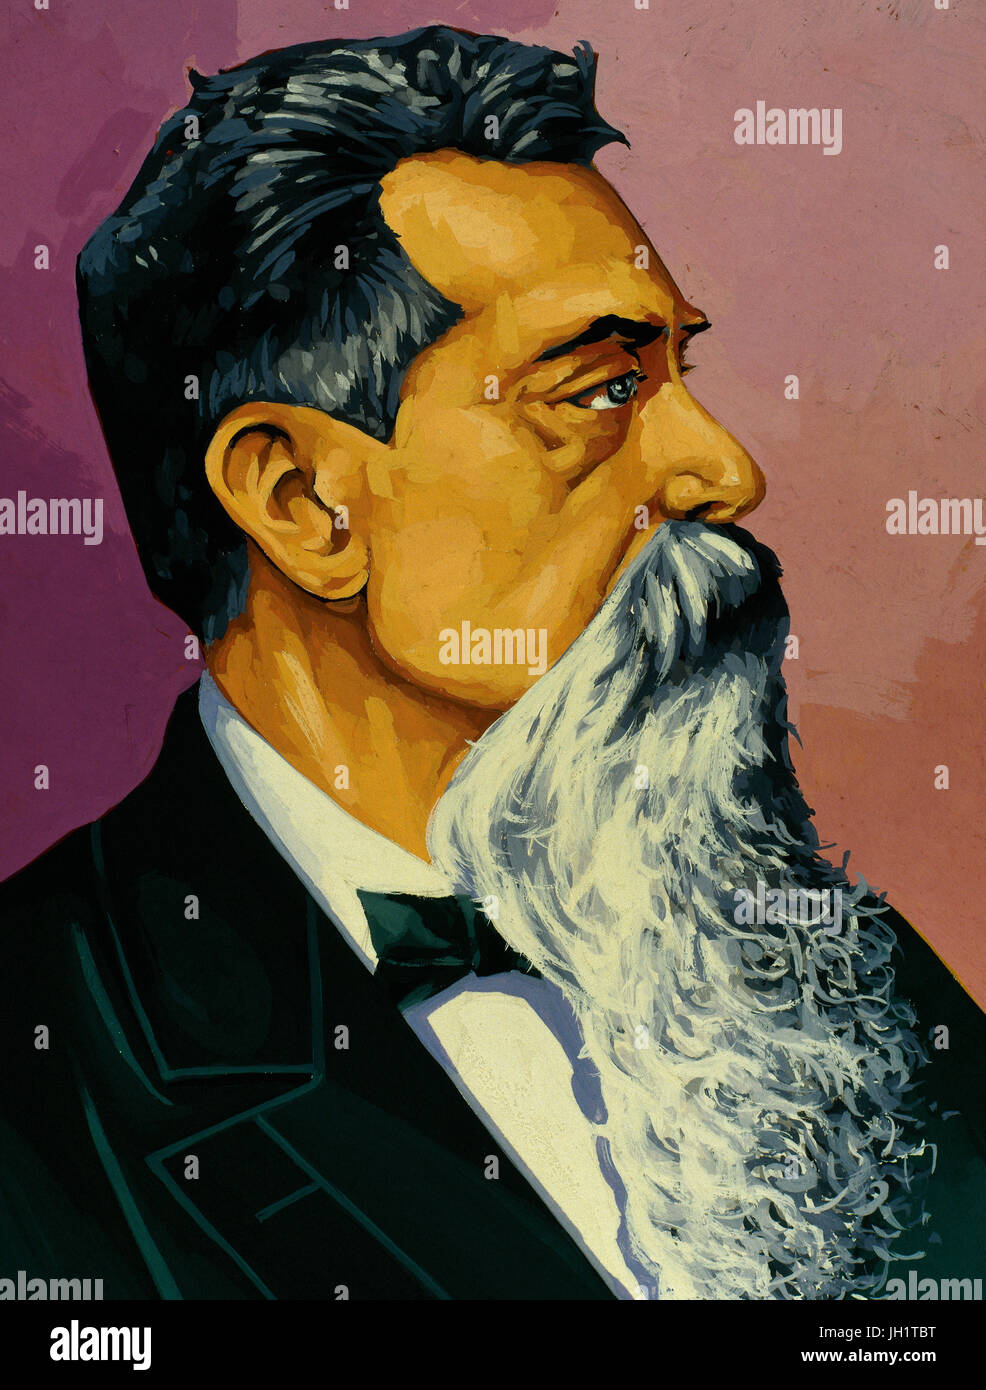 Leandro Nicephorus Alem (1842-1896). Argentinian politician. Head of the Revolution of 1890 that demolished the - Stock Image